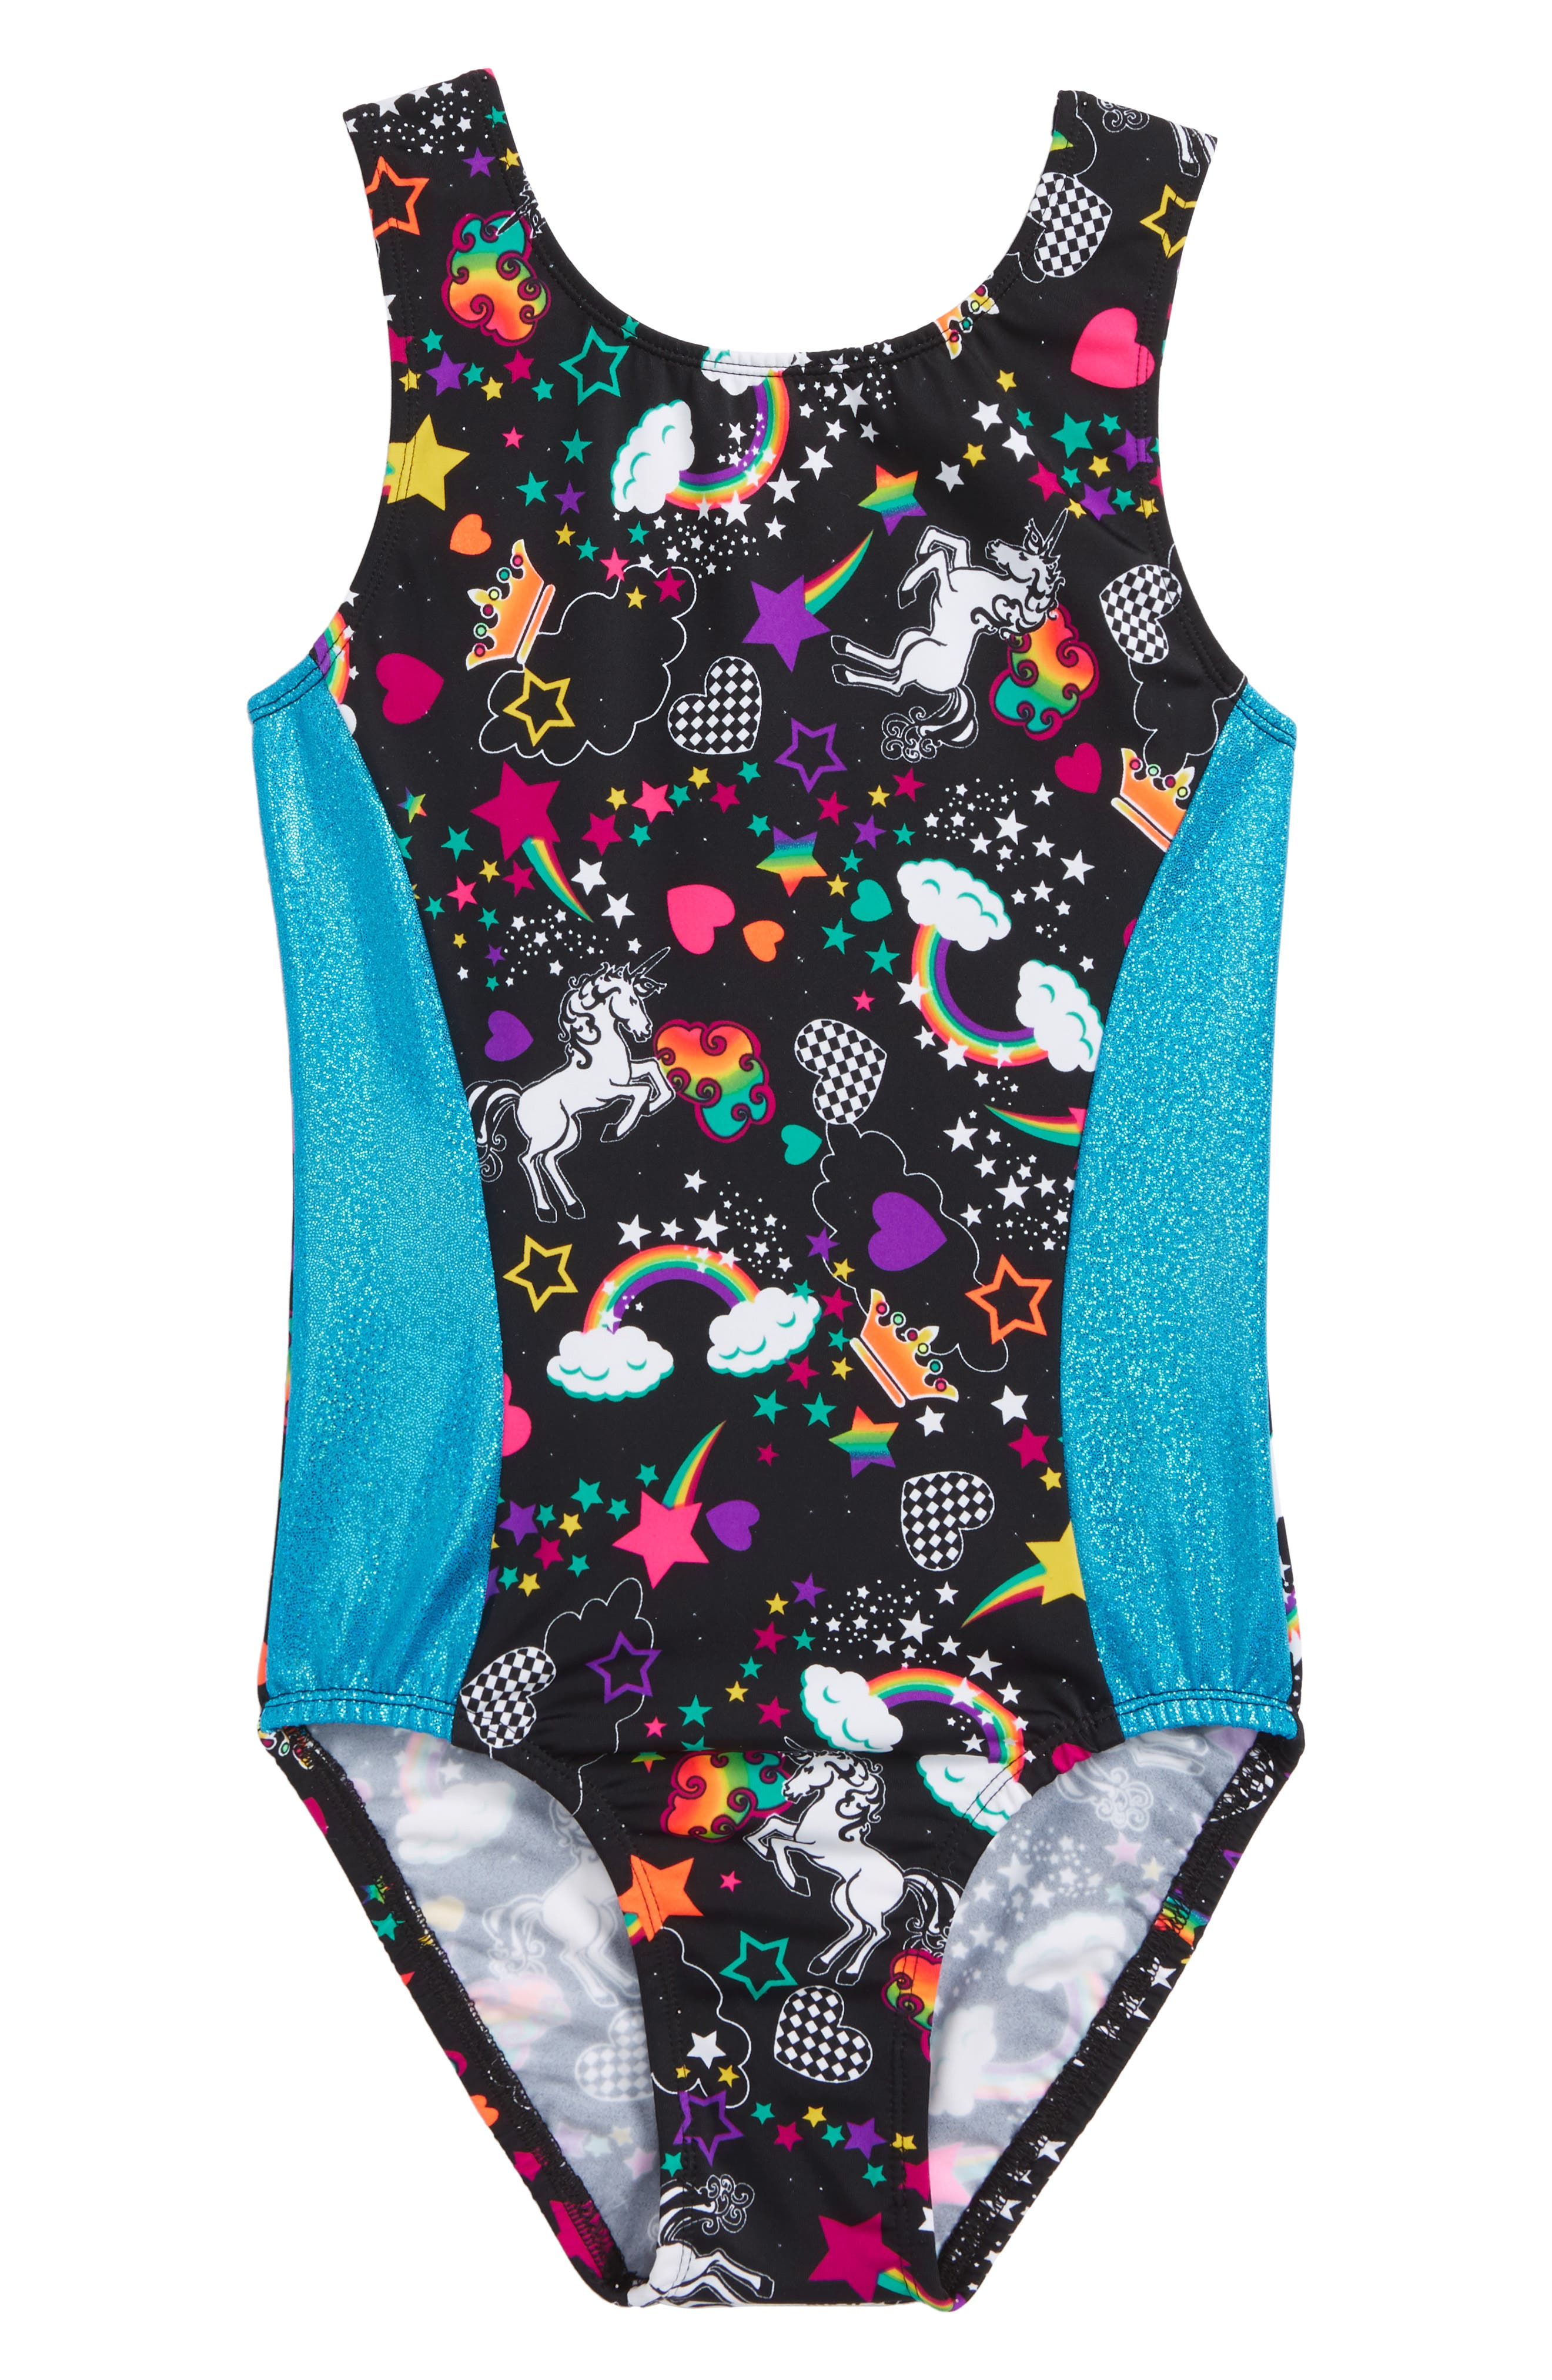 GP SPORT, Unicorn Forever Perfect Fit Leotard, Main thumbnail 1, color, BLACK